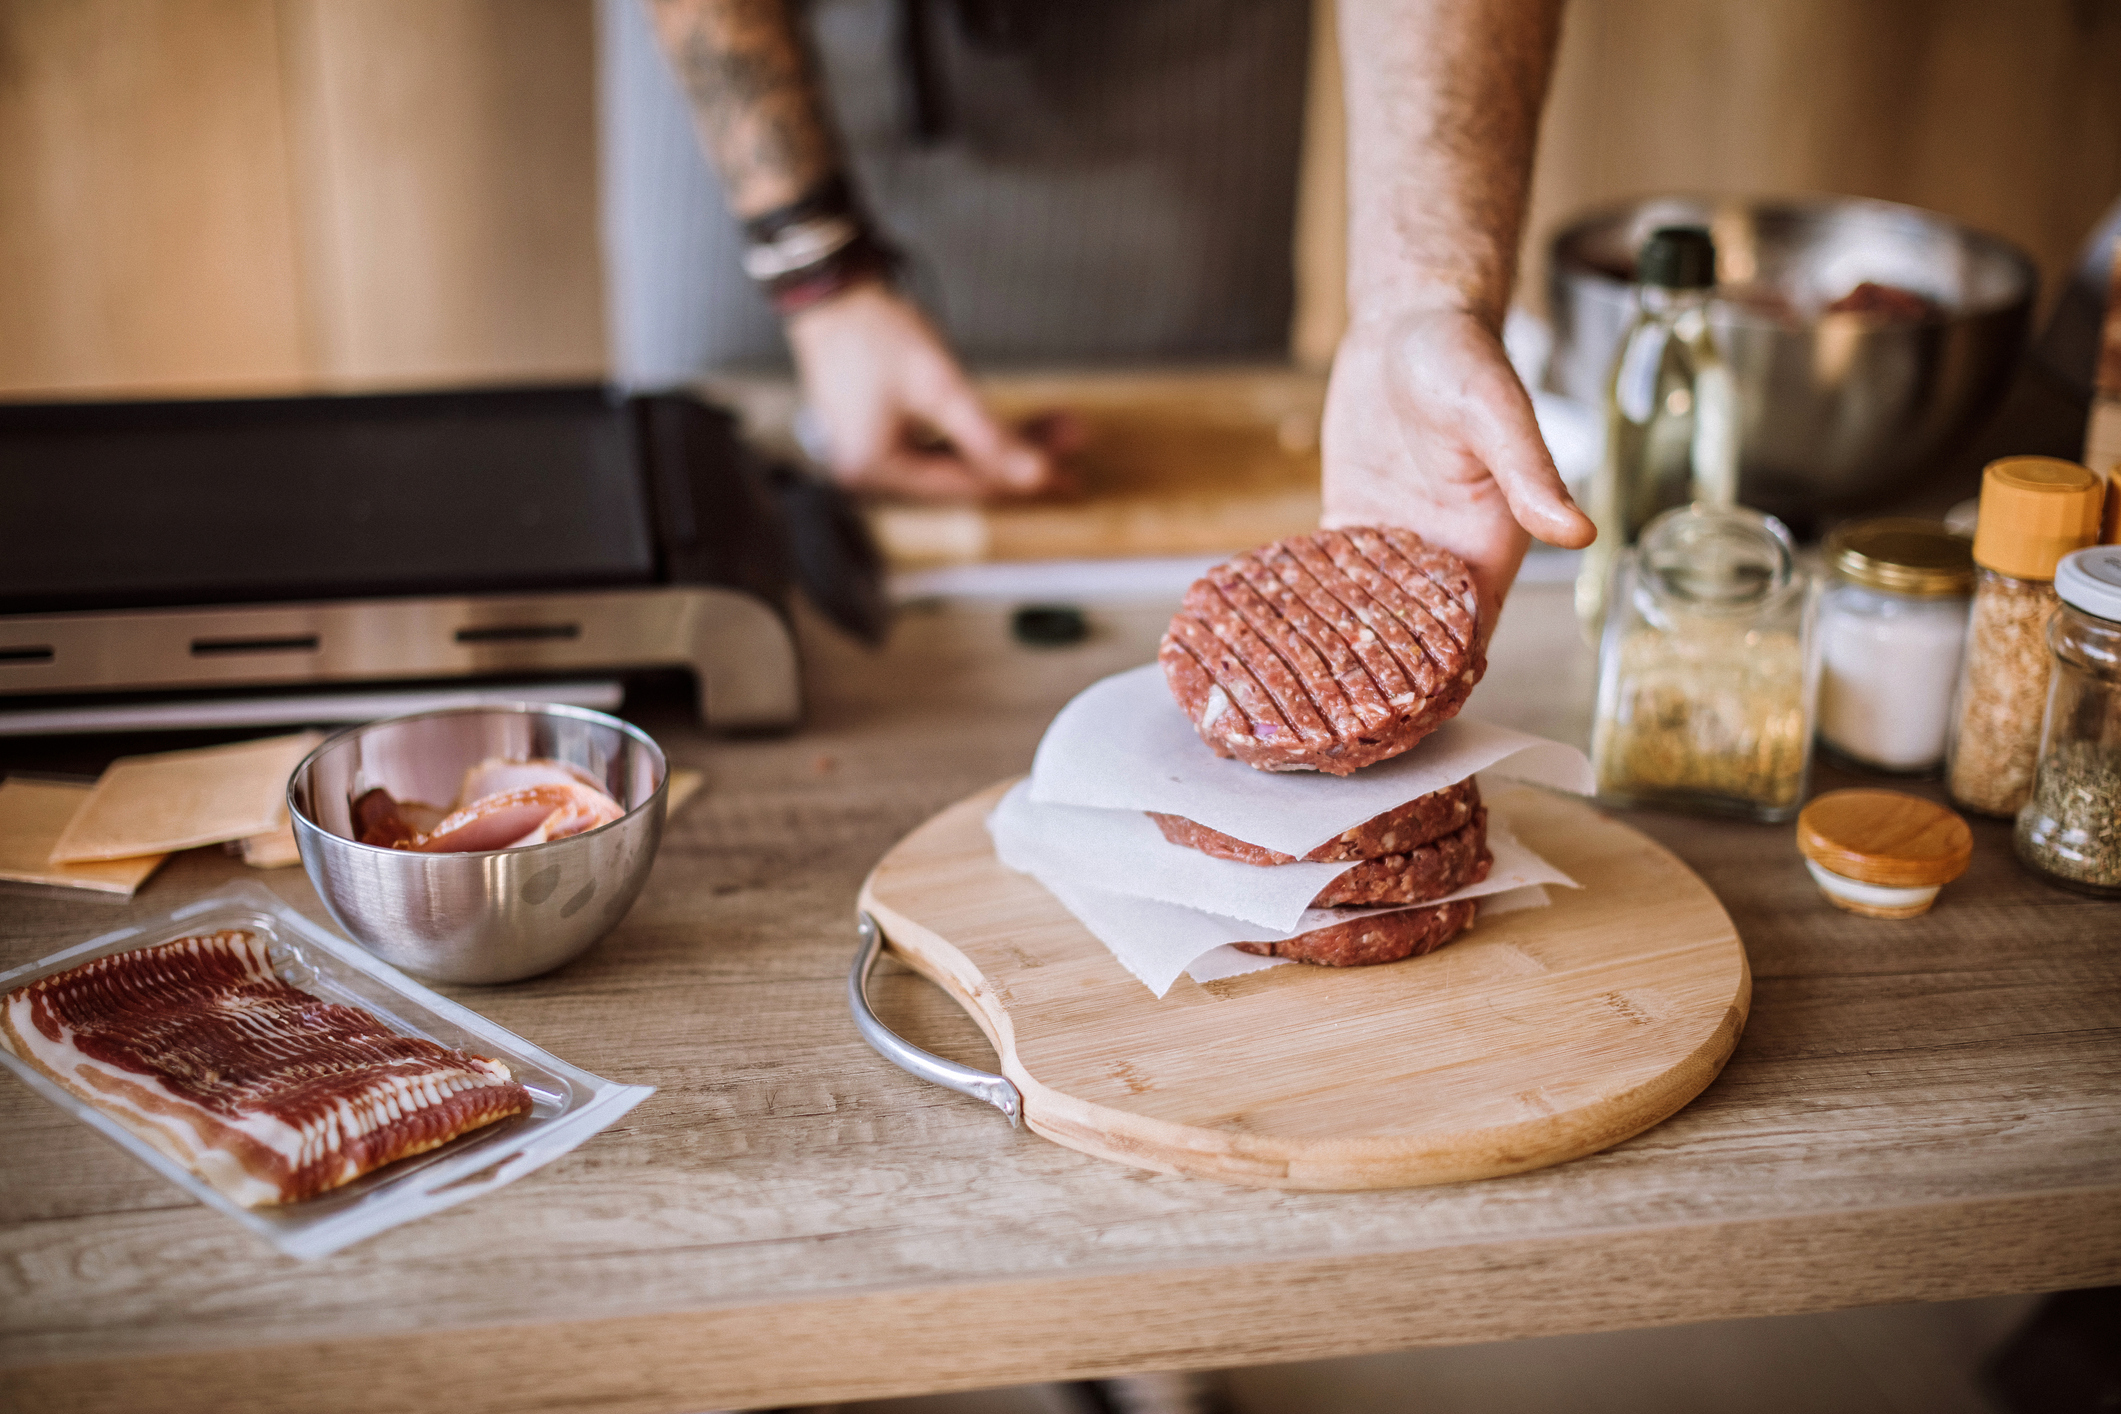 Young Chef Making Burgers Out Of Beef, Forming Shapes Carefully at Domestic Kitchen